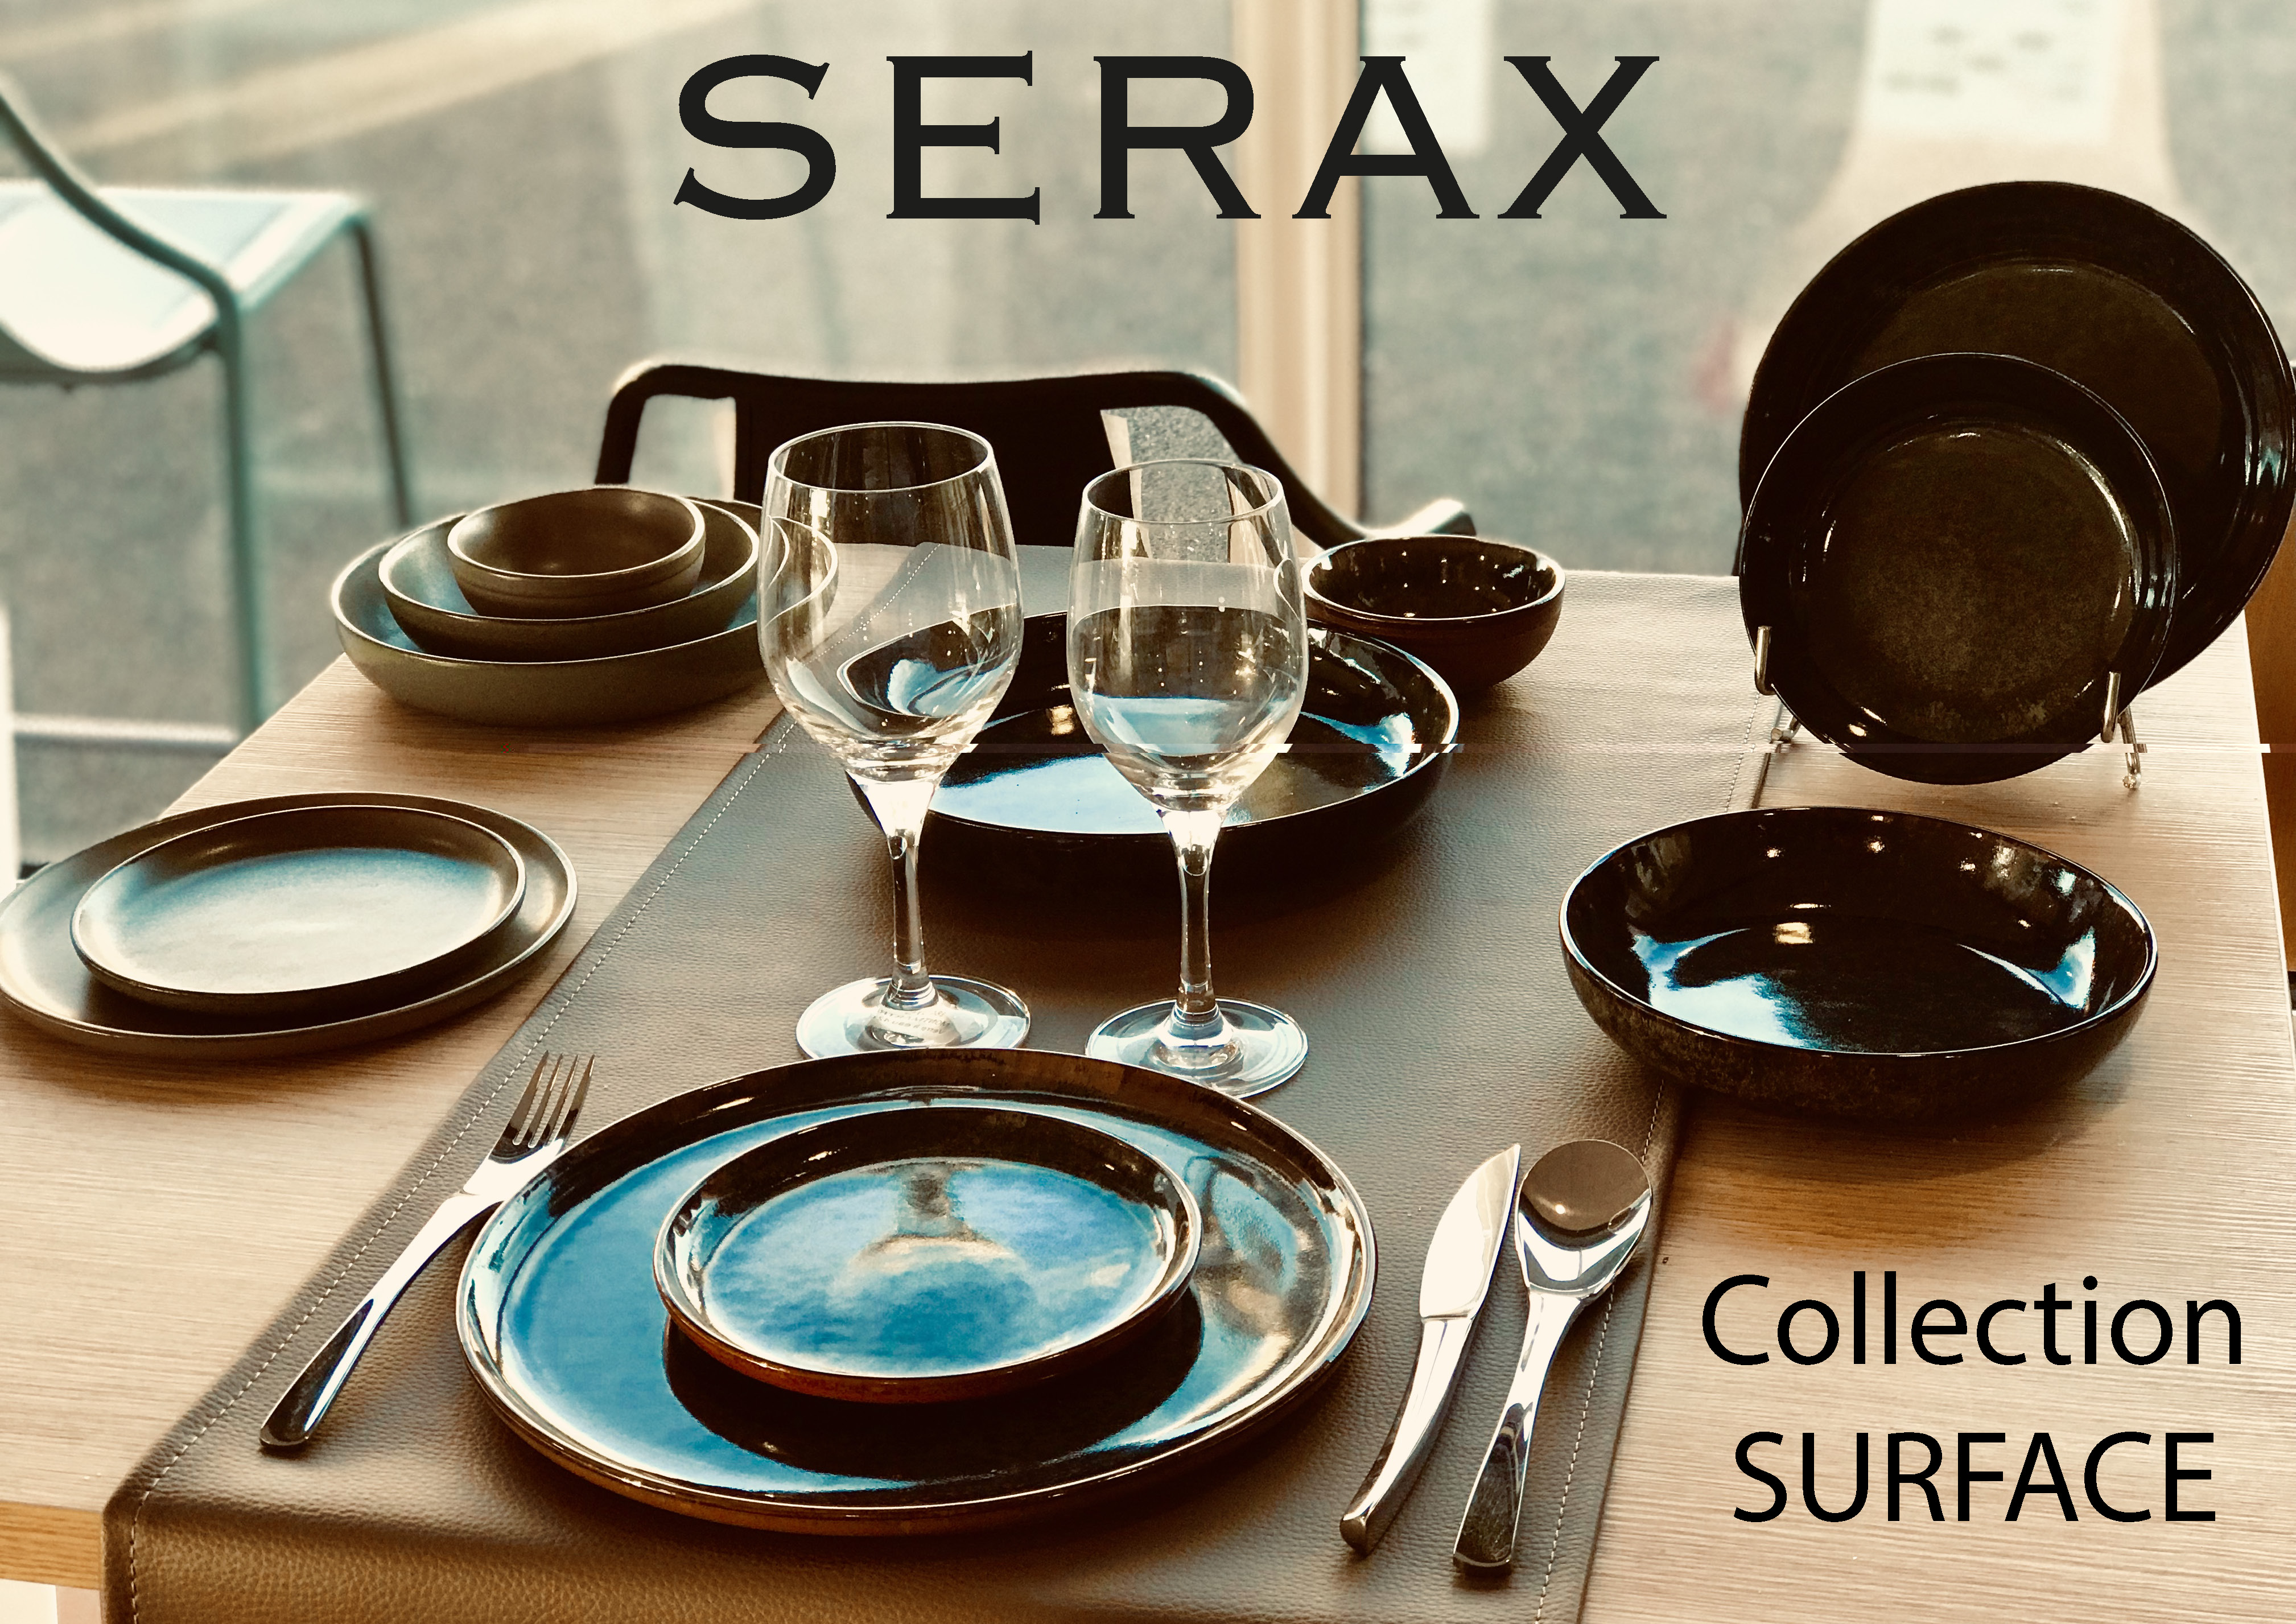 Collection SERAX